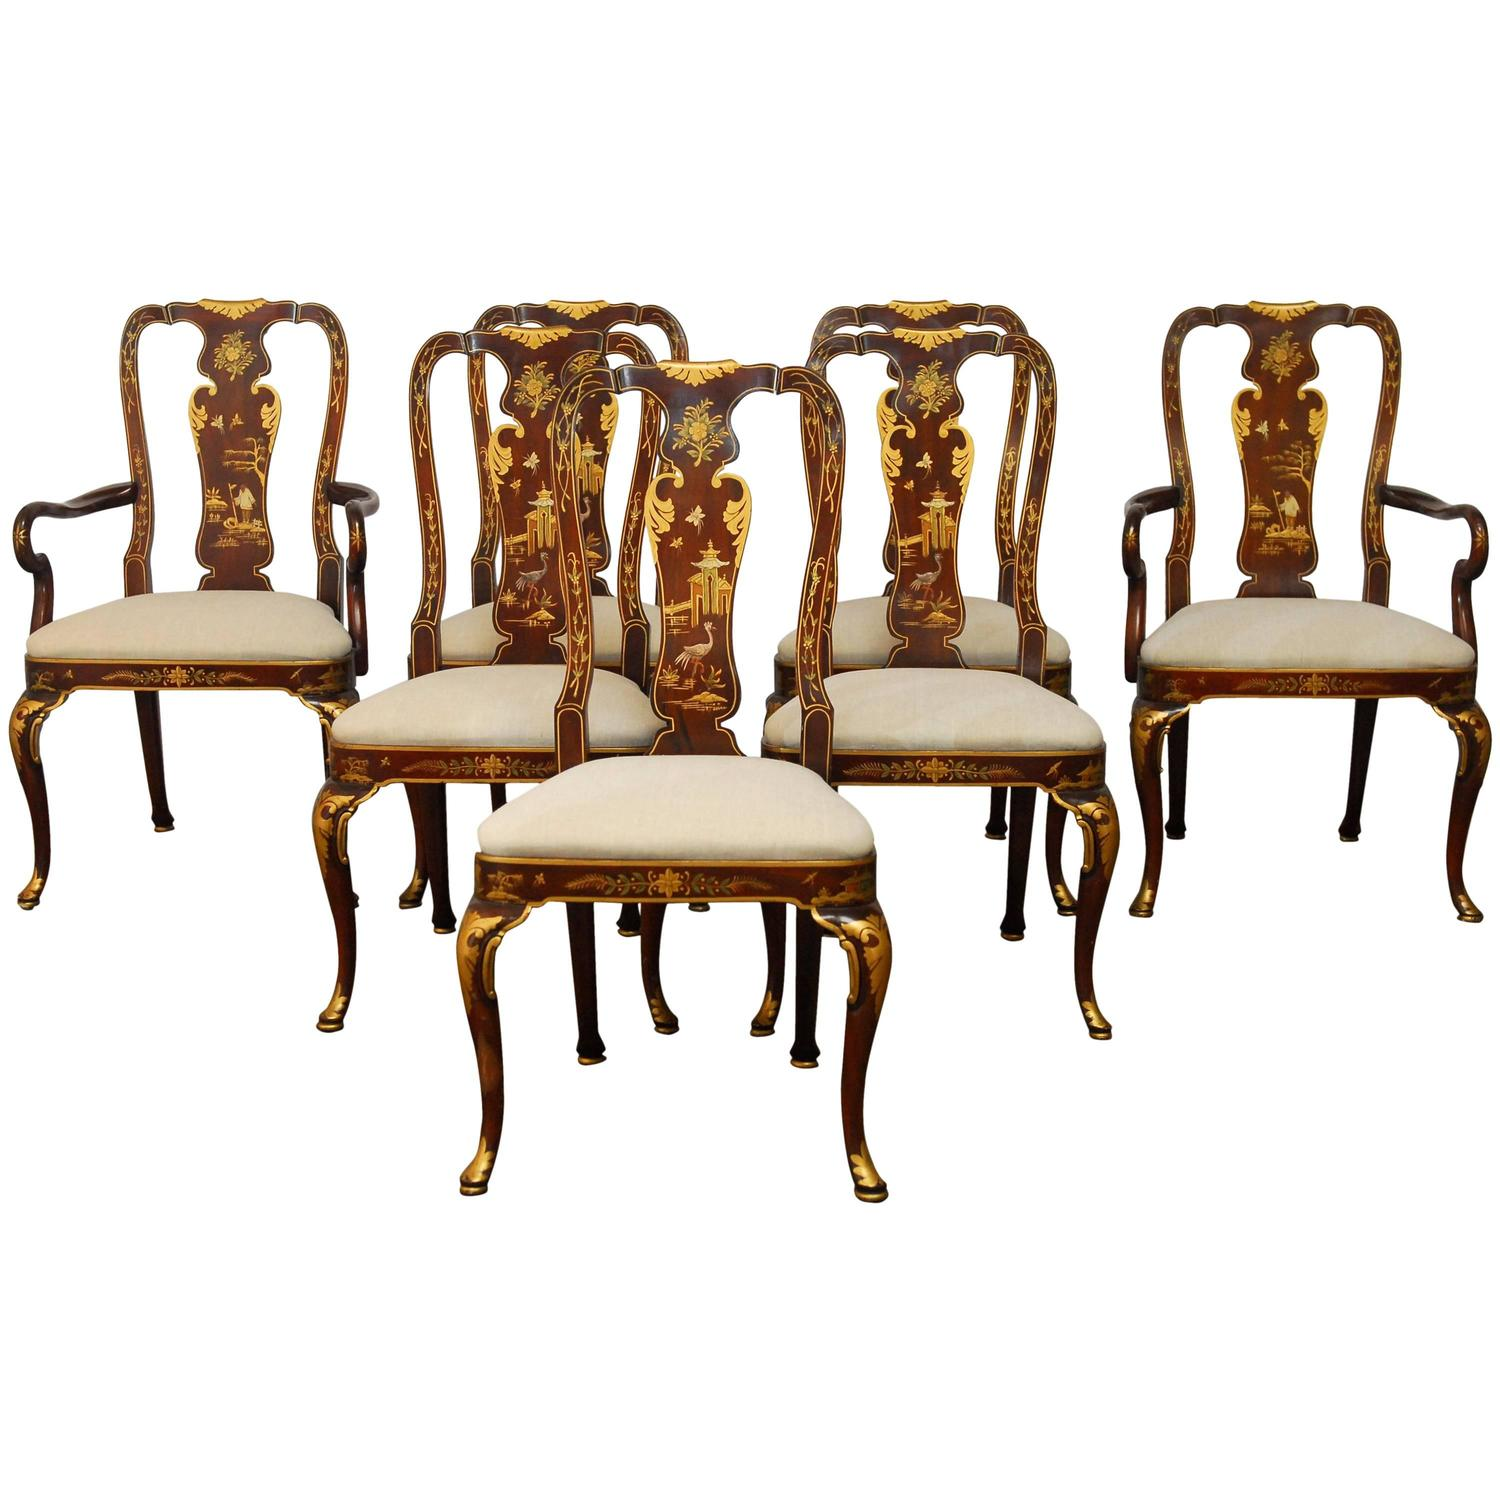 Set of seven chinoiserie queen anne dining chairs at 1stdibs for Dining room chairs queen anne